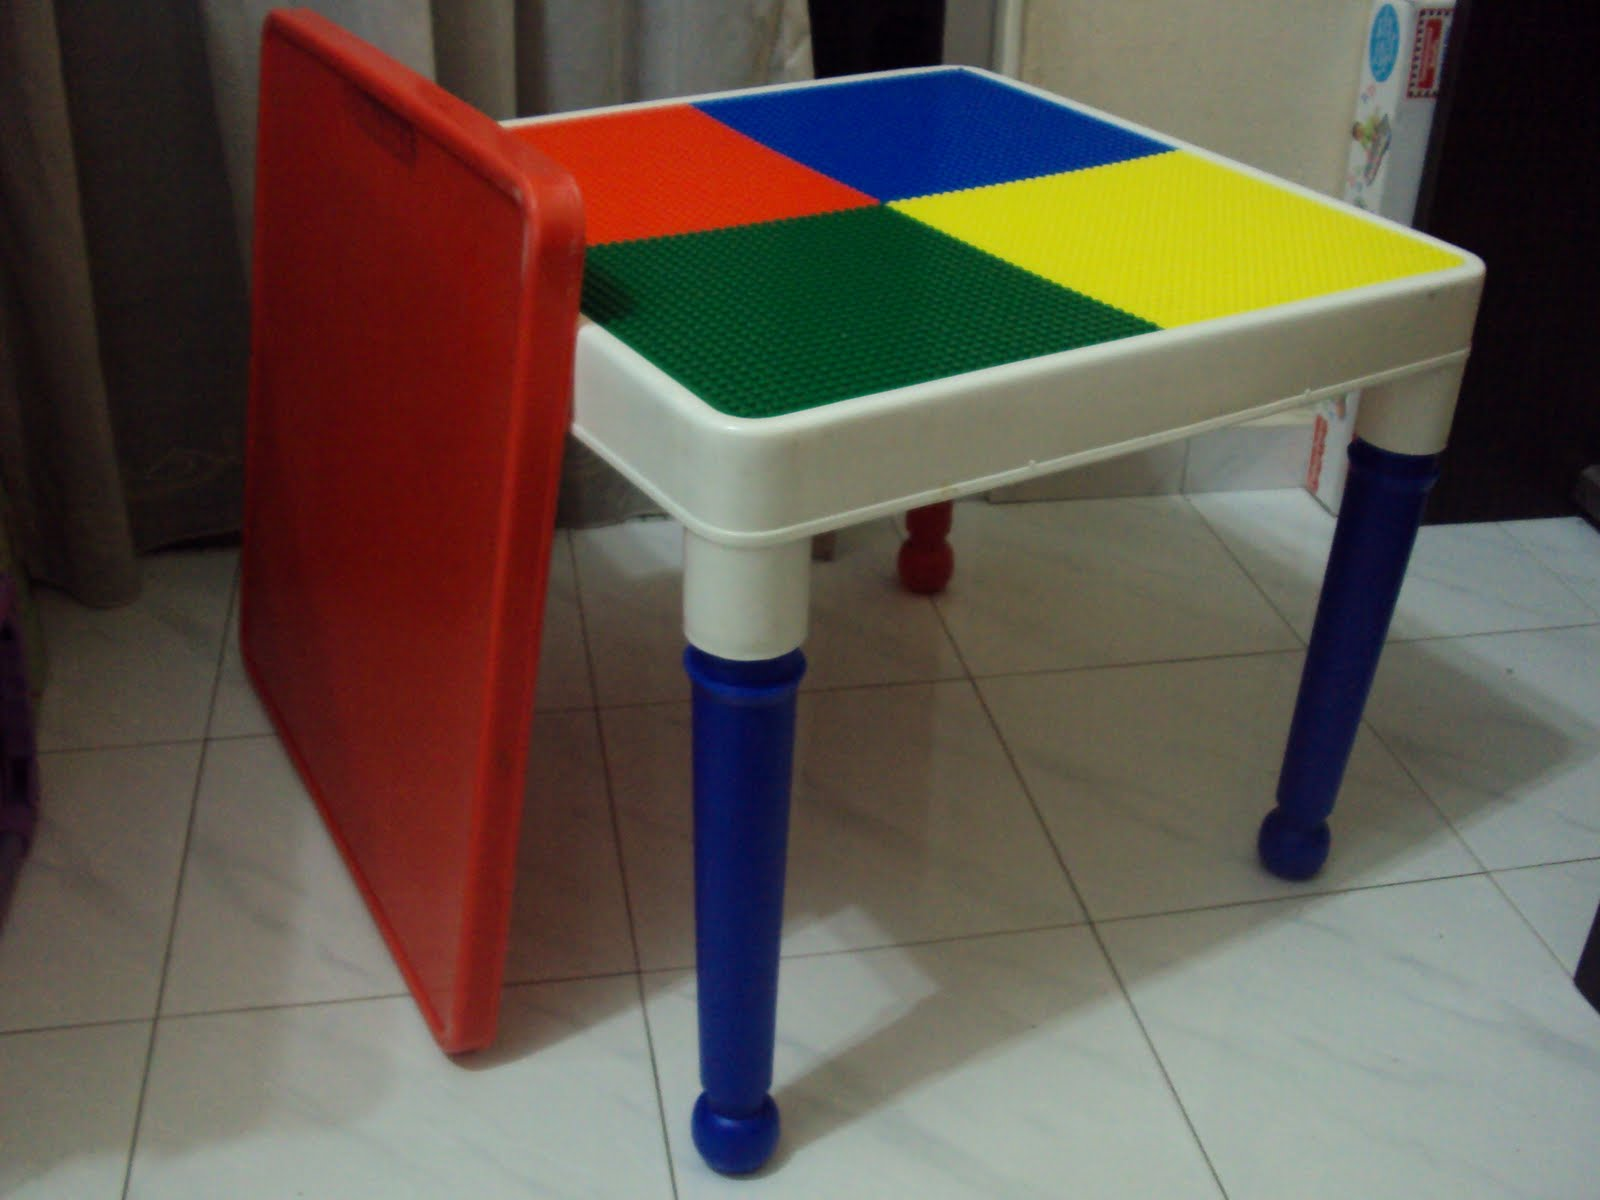 Toys4toddlers: Tot Tutors 2 in 1 Lego construction table